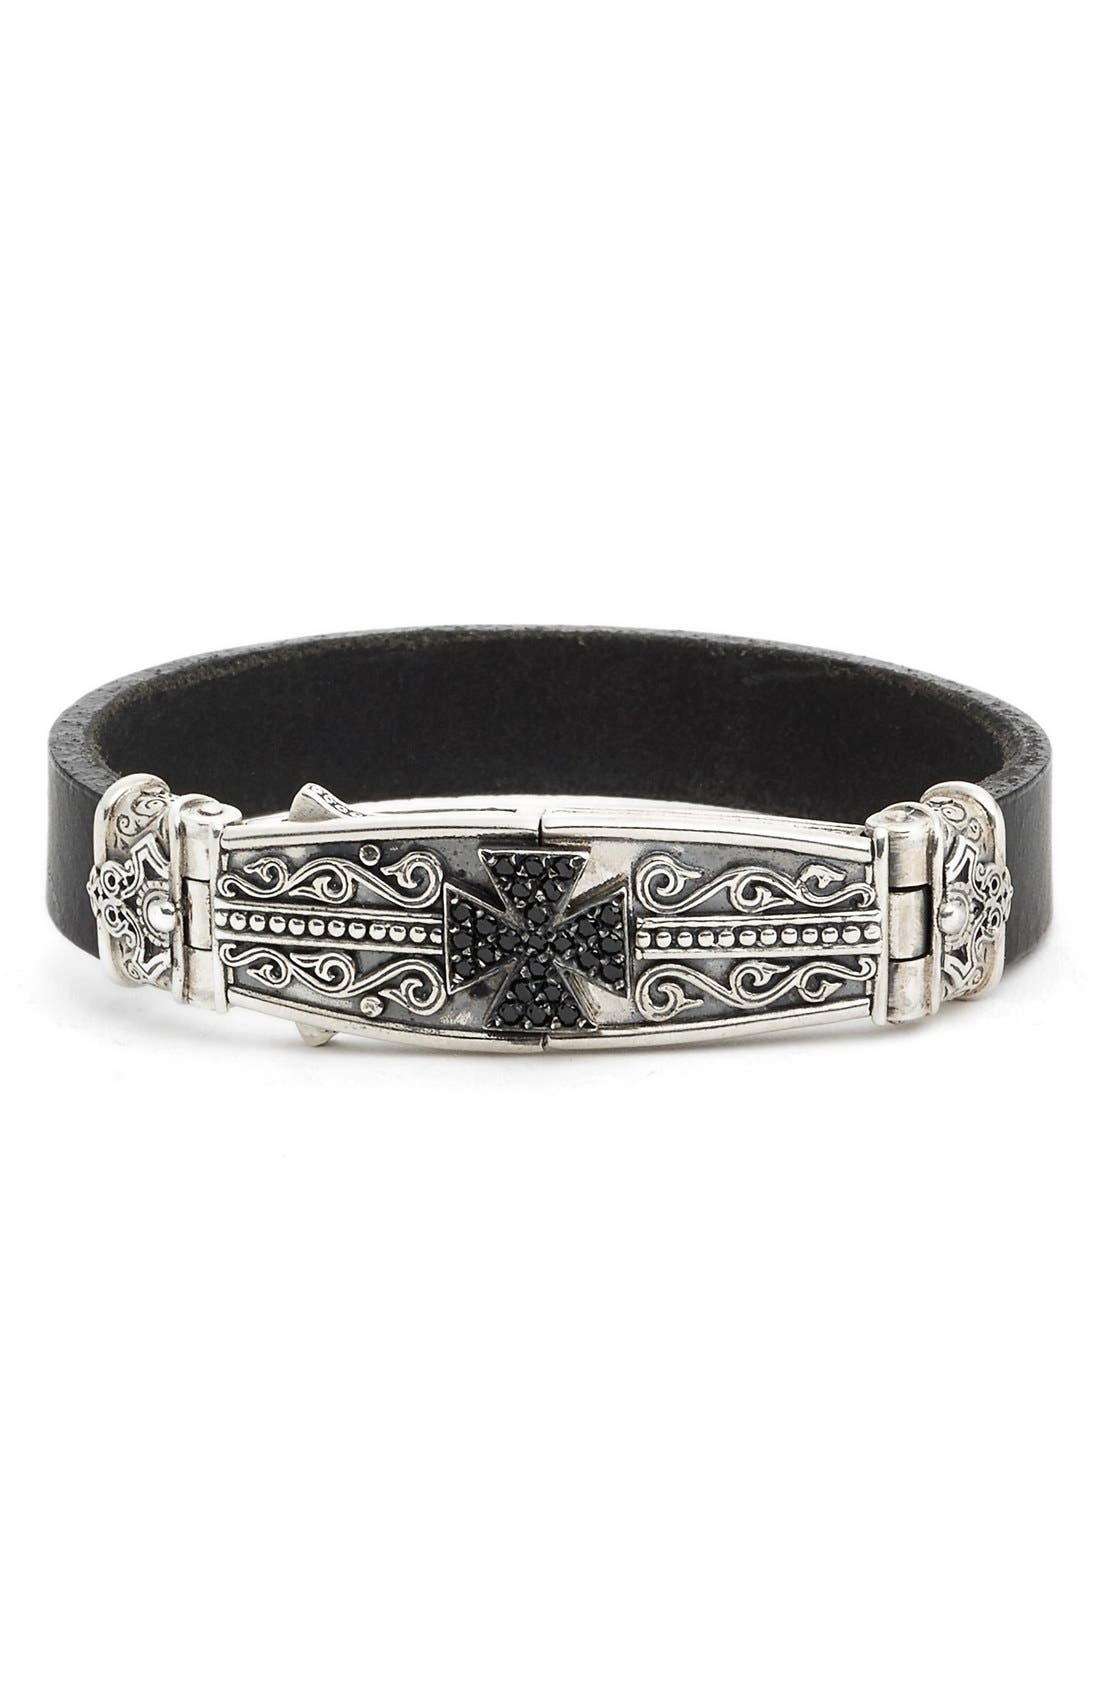 KONSTANTINO Plato Maltese Cross Leather Bracelet